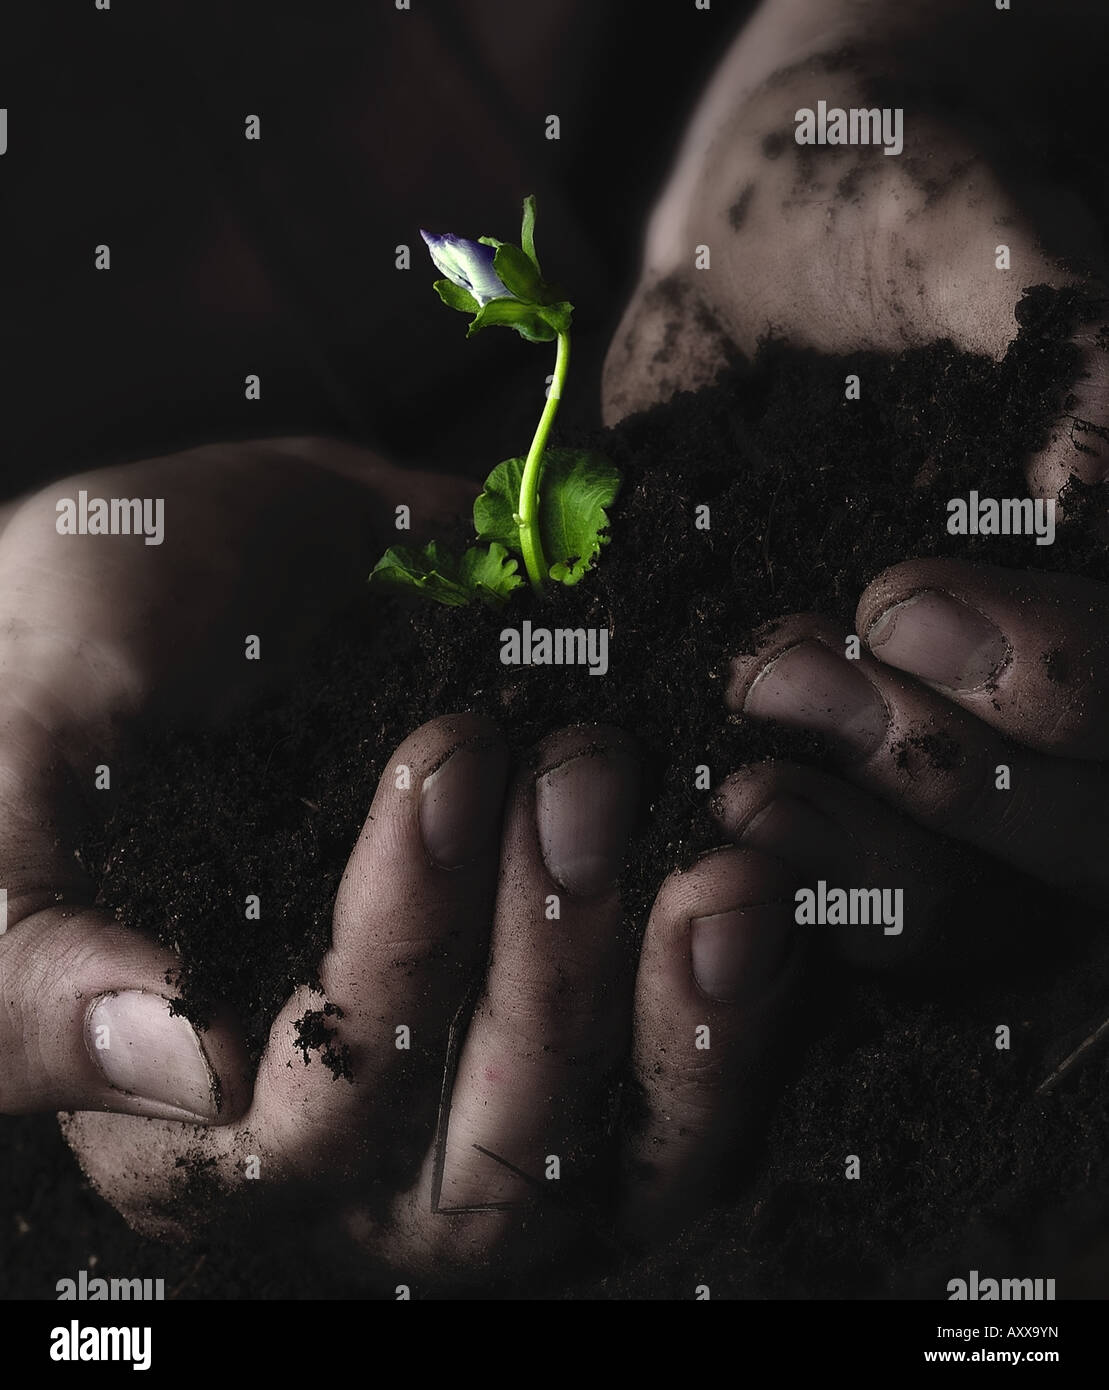 Plant Pansy, Viola wittrockiana, Green, Viola, wittrockiana Hand holding sprouting seedling - Stock Image